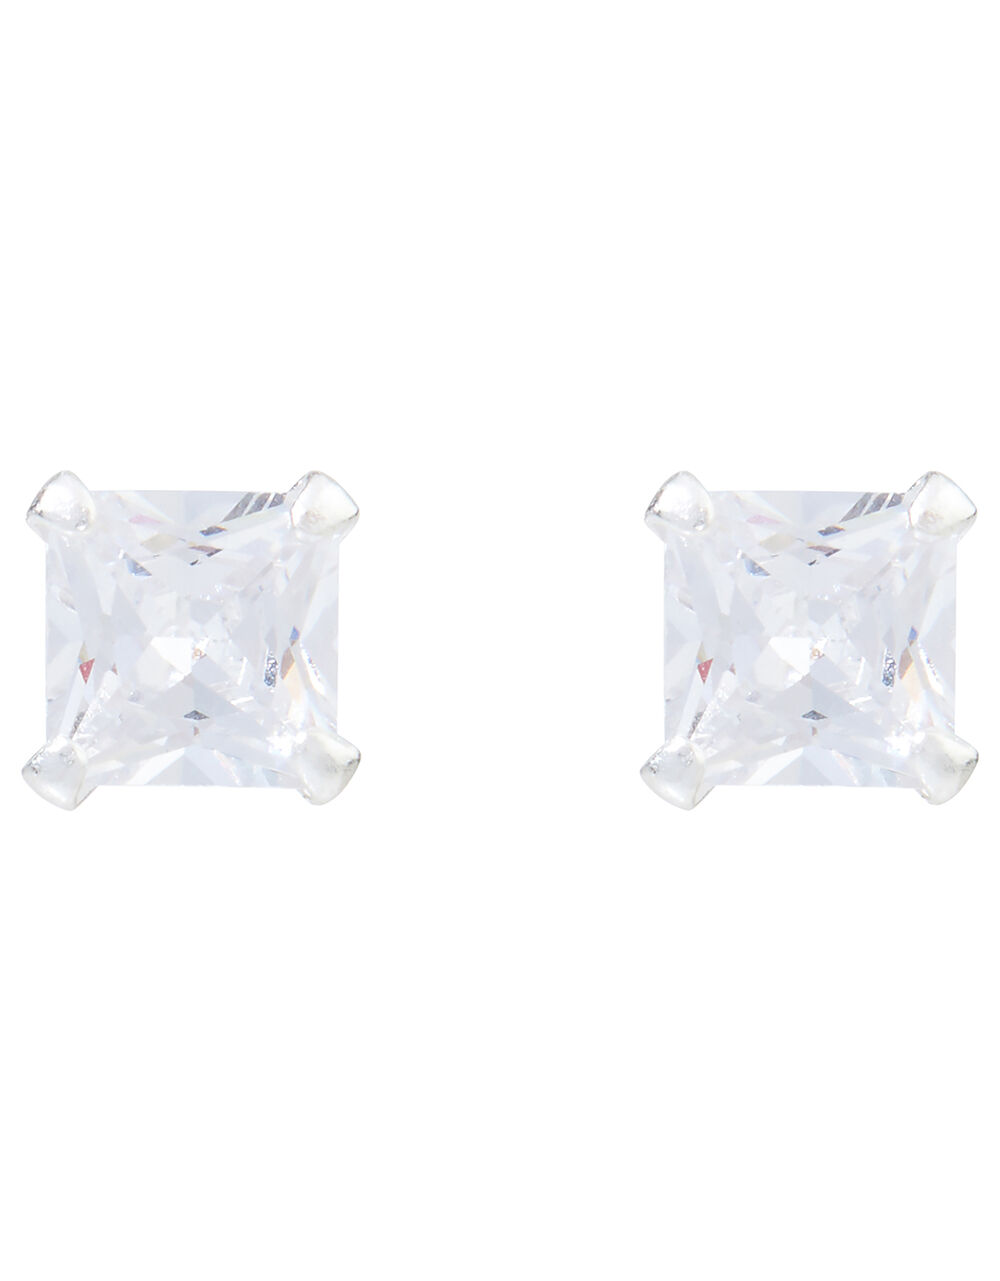 Sterling Silver Square Crystal Stud Earrings, , large